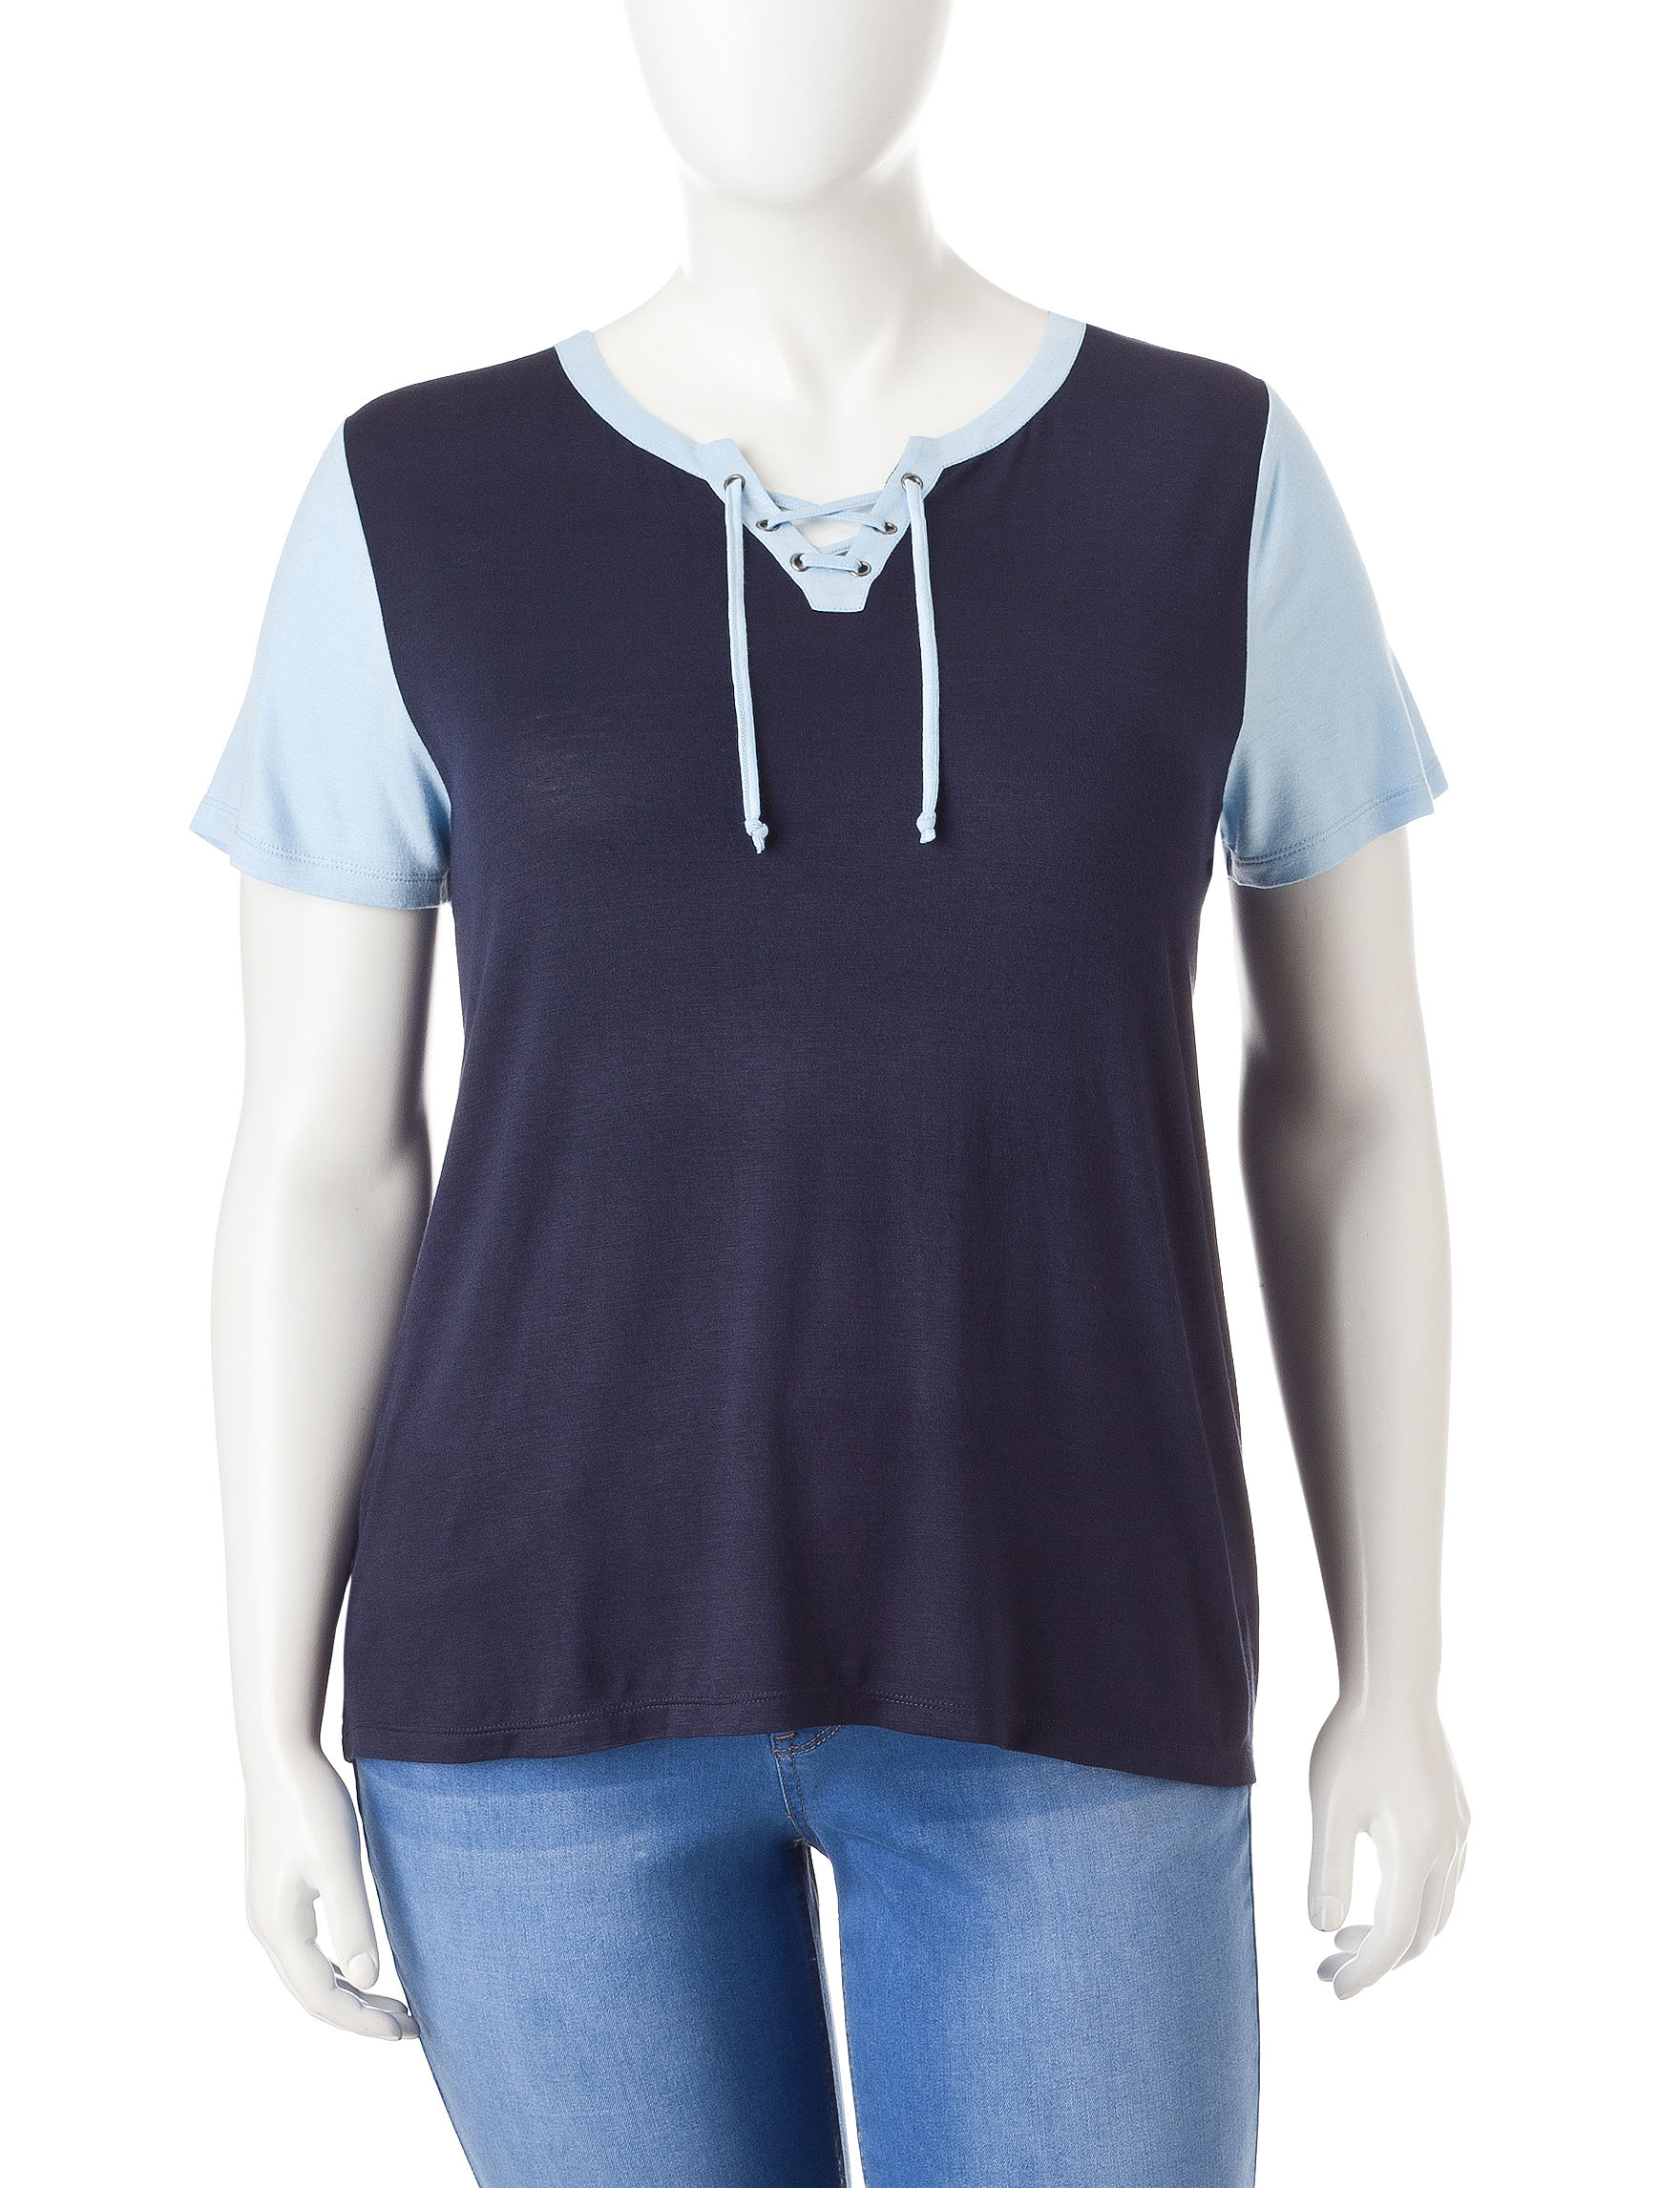 Extra Touch Navy Shirts & Blouses